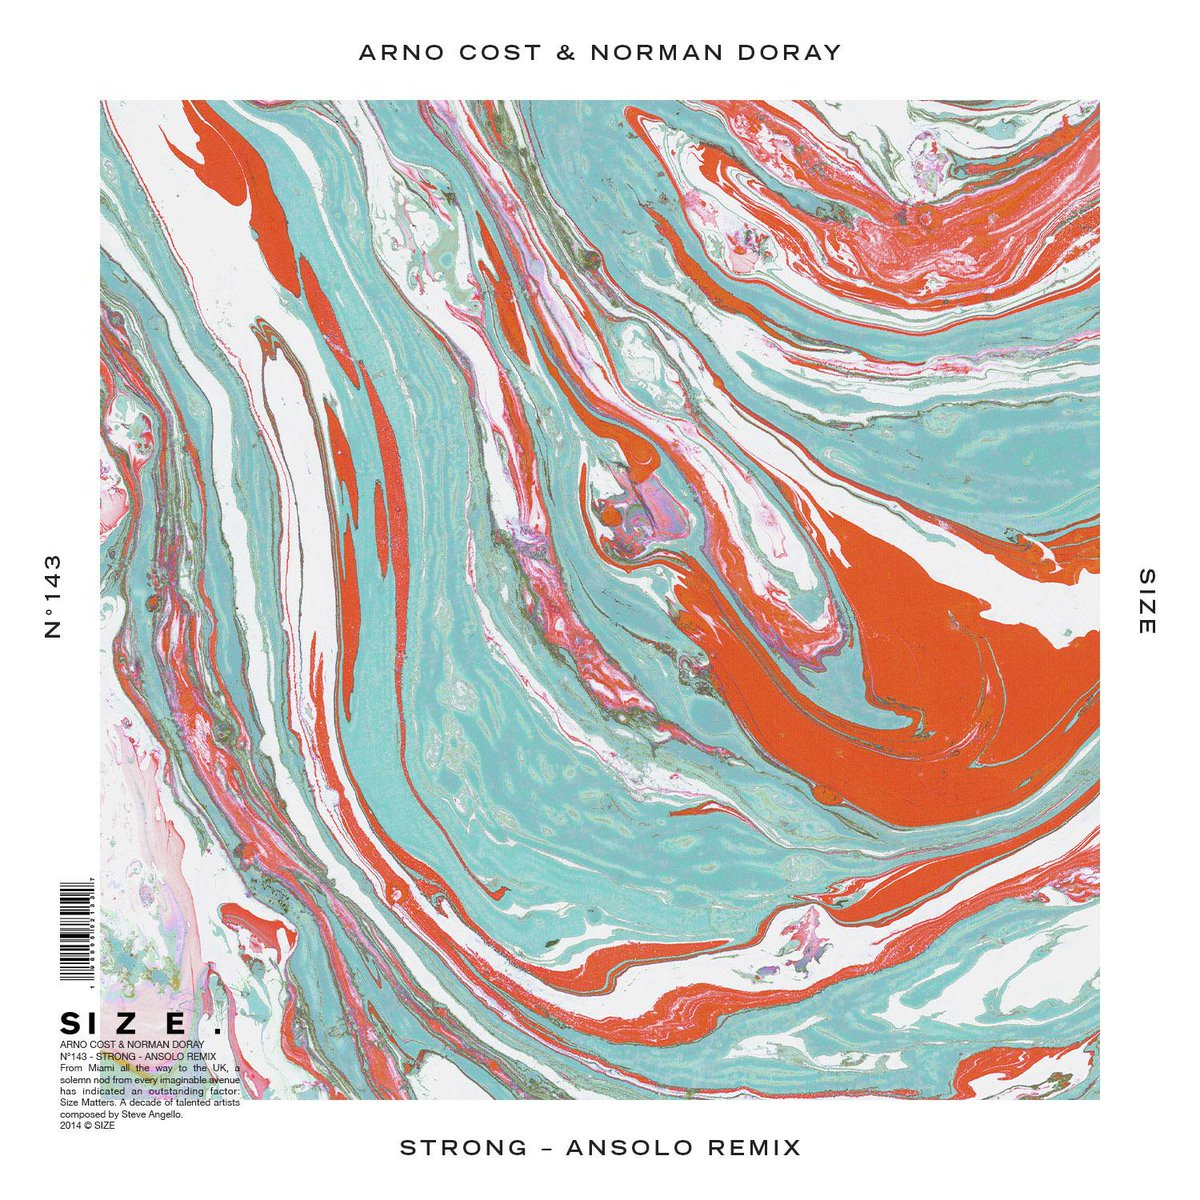 .@Ansolo_Music's remix of 'Strong' is already #12 on the @Beatport Progressive House Charts!! http://t.co/tgrugi78rZ http://t.co/ofvhTCDUJK